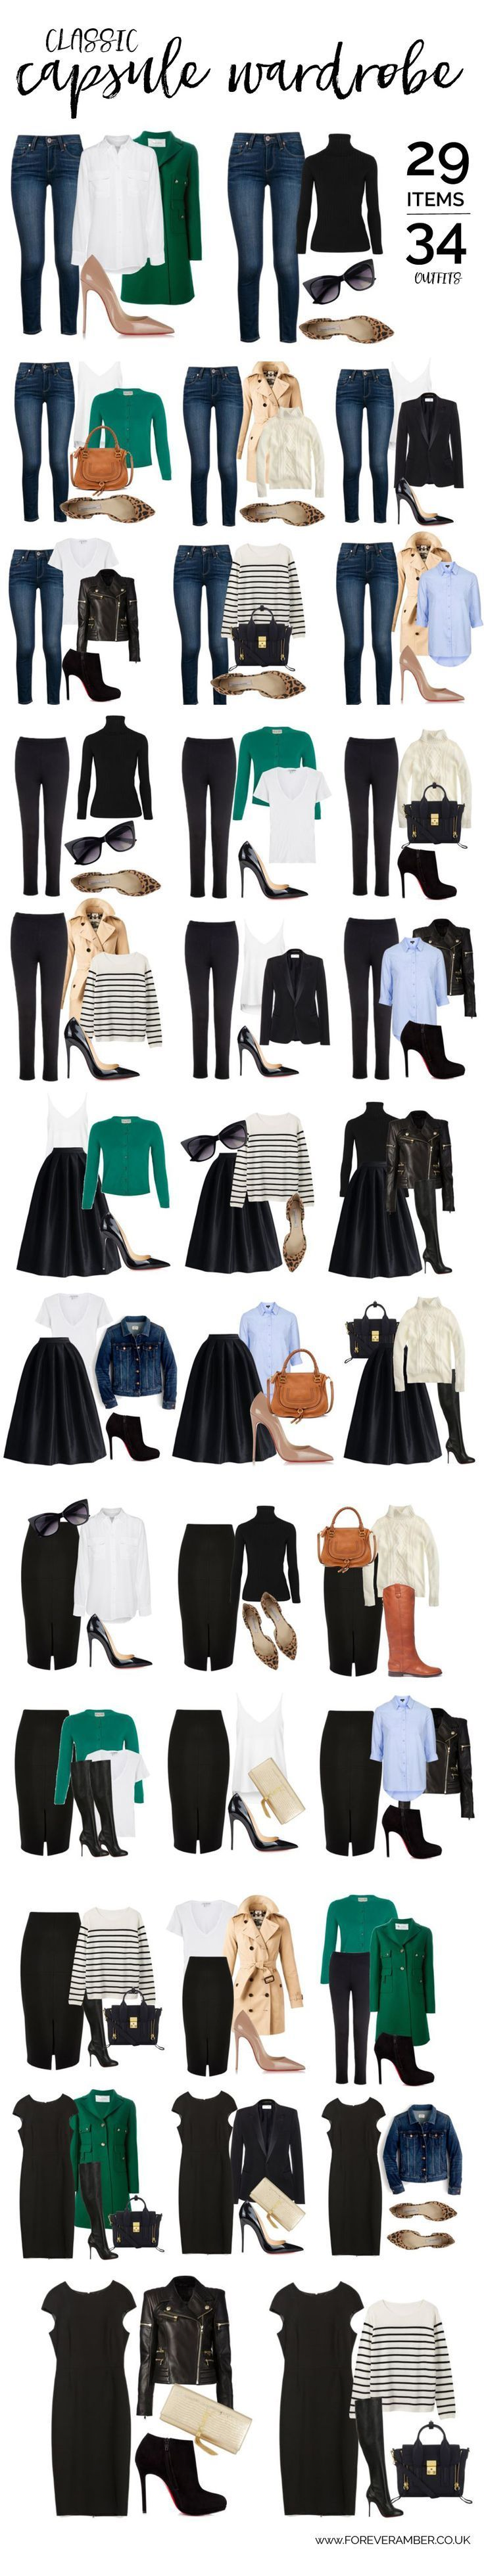 classic capsule wardrobe: 34 outfits from a selection of wardrobe essentials